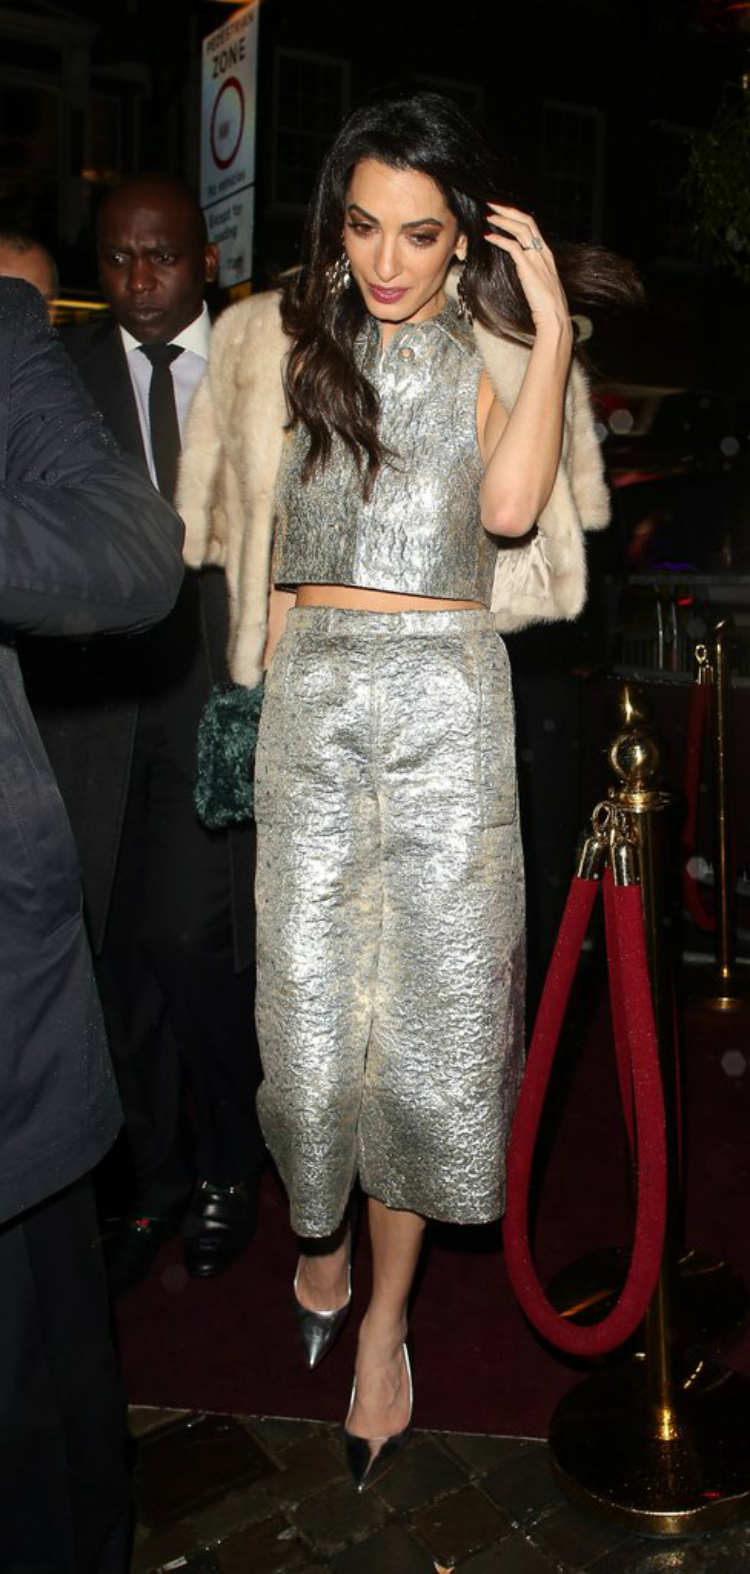 6amalclooney_pants_04.jpg